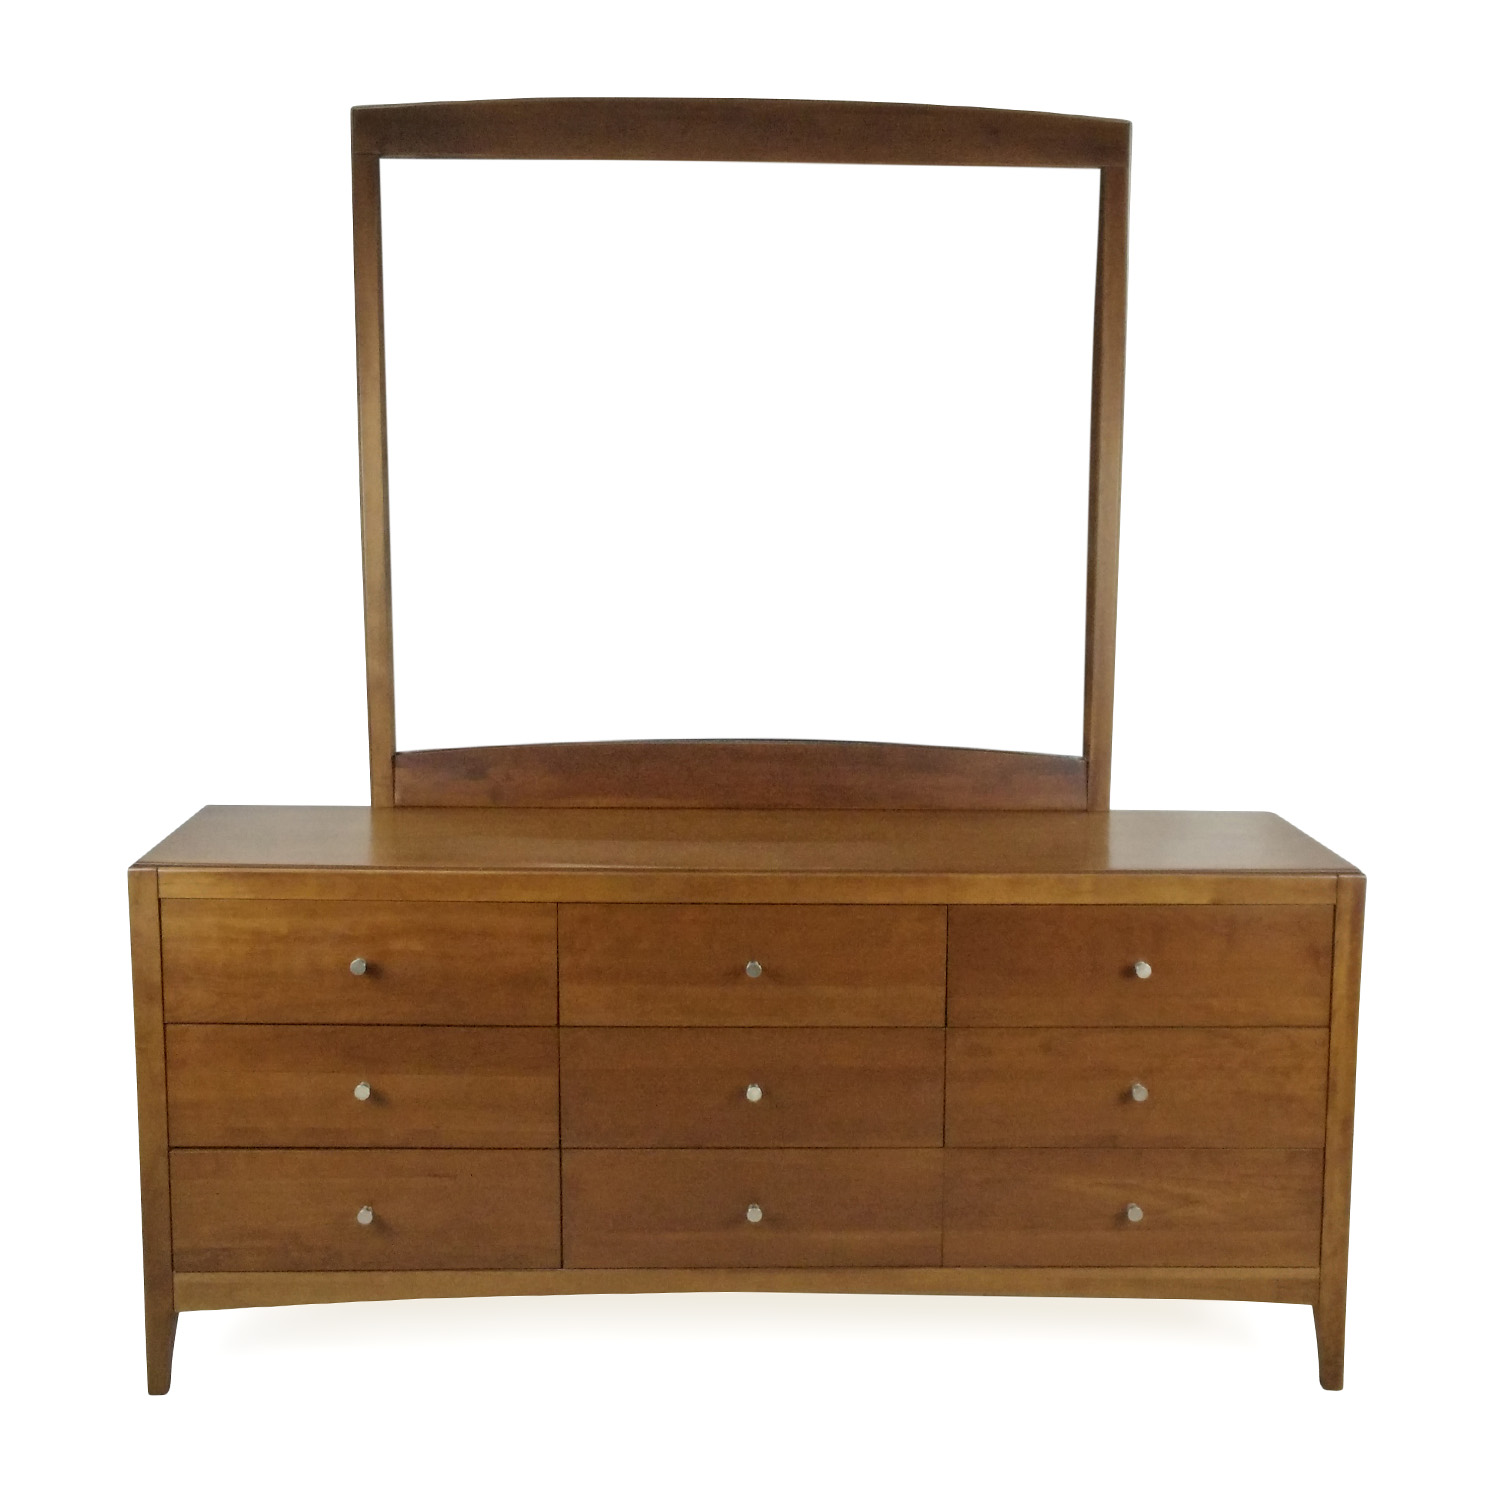 Macy's Macy's Solid Wood 9-Drawer Dresser With Mirror